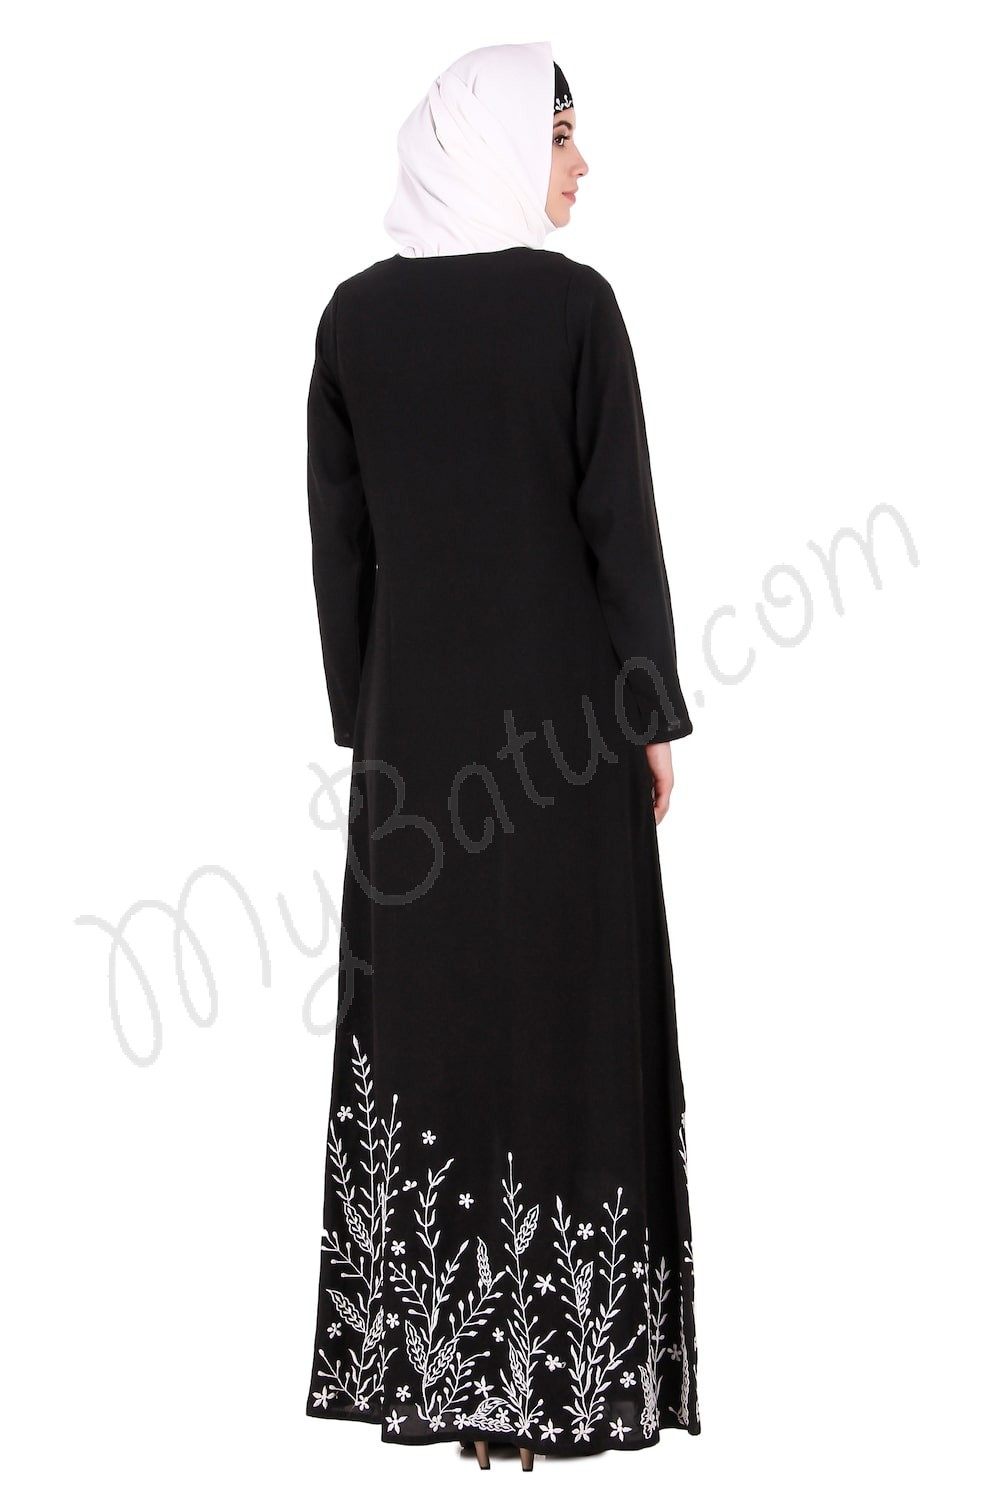 Abaya Embroidery Patterns Descending Leaf Pattern Embroidered Abaya